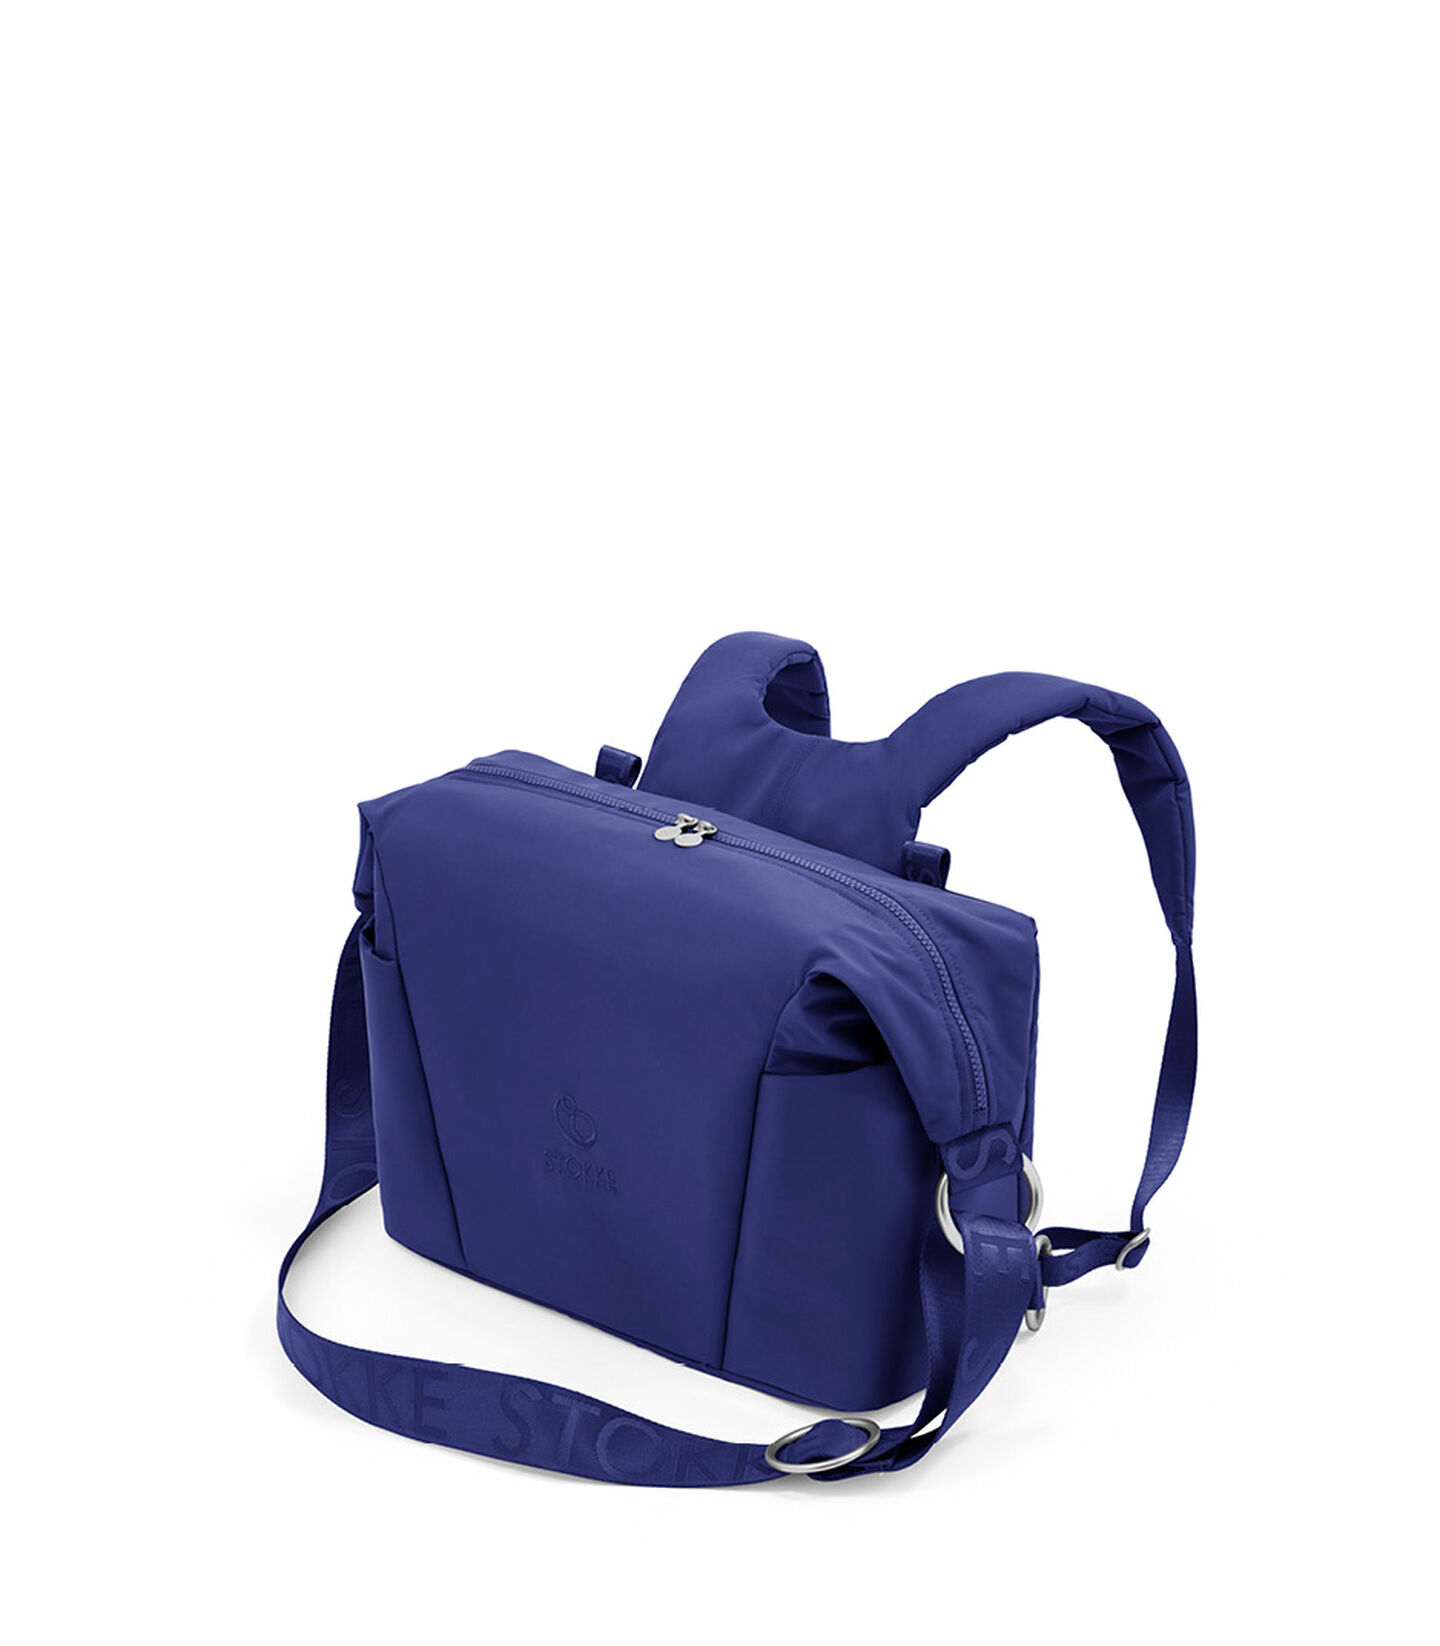 Stokke® Xplory® X Changing Bag Royal Blue. Accessories. view 2